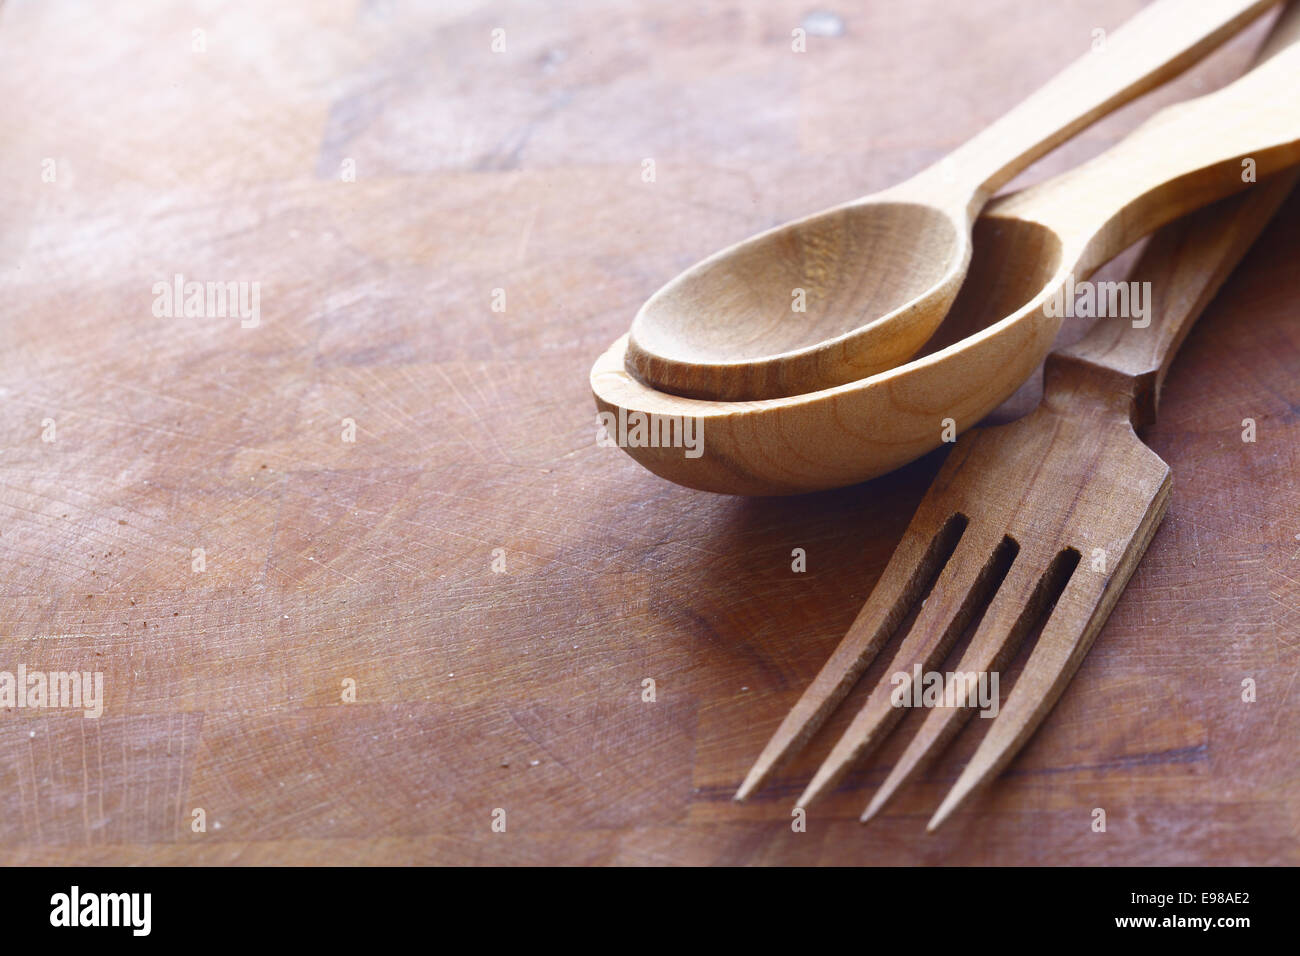 Handcrafted wooden kitchen utensils with a fork and spoons in two sizes lying on a wood surface with copyspace - Stock Image